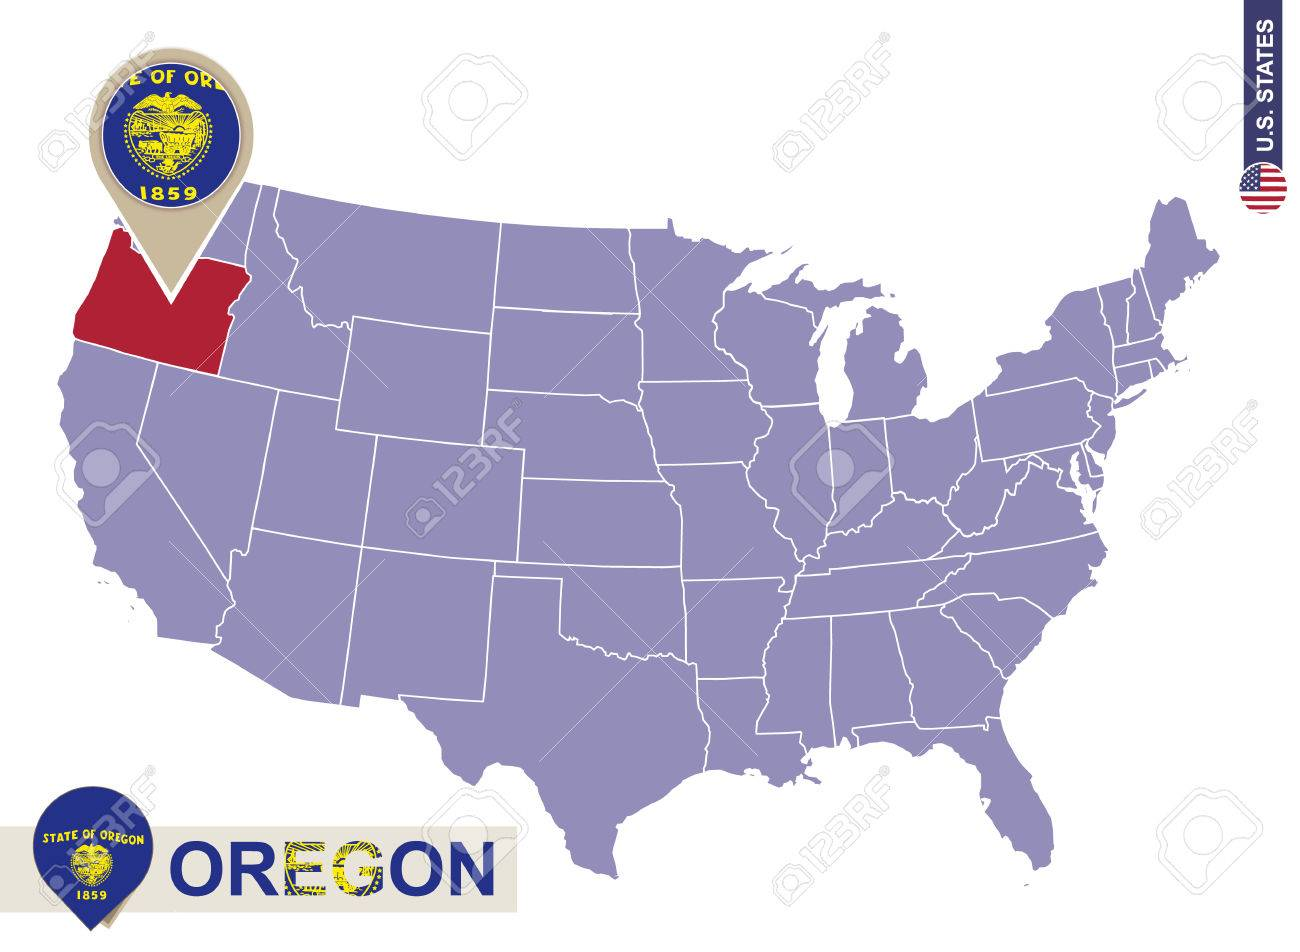 Oregon Map Us My Blog - Usa map oregon